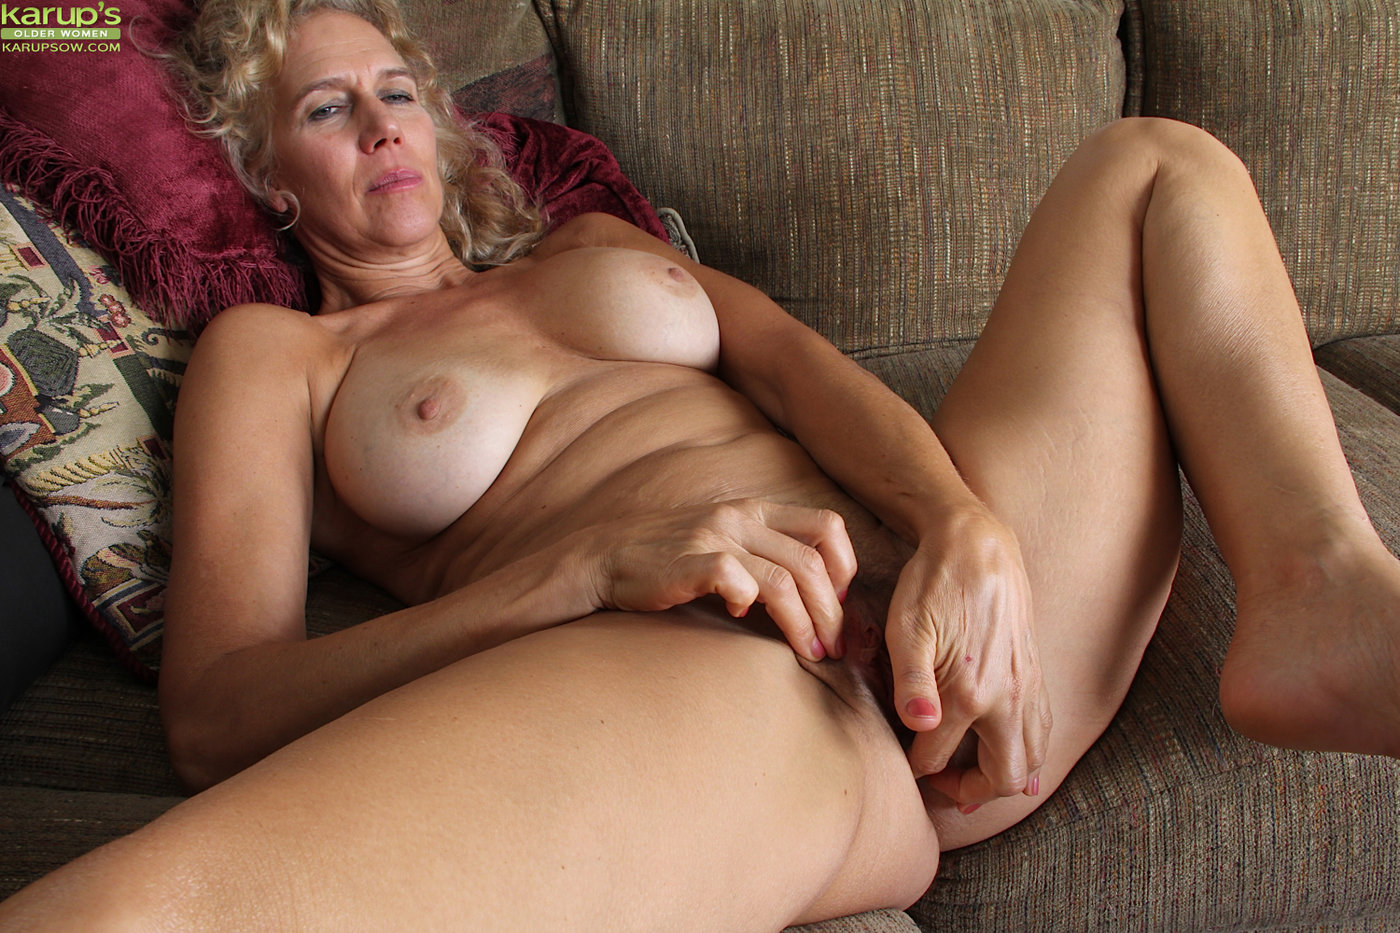 Mom watches daughter riding dick and masturbates her shaved pussy during incest act